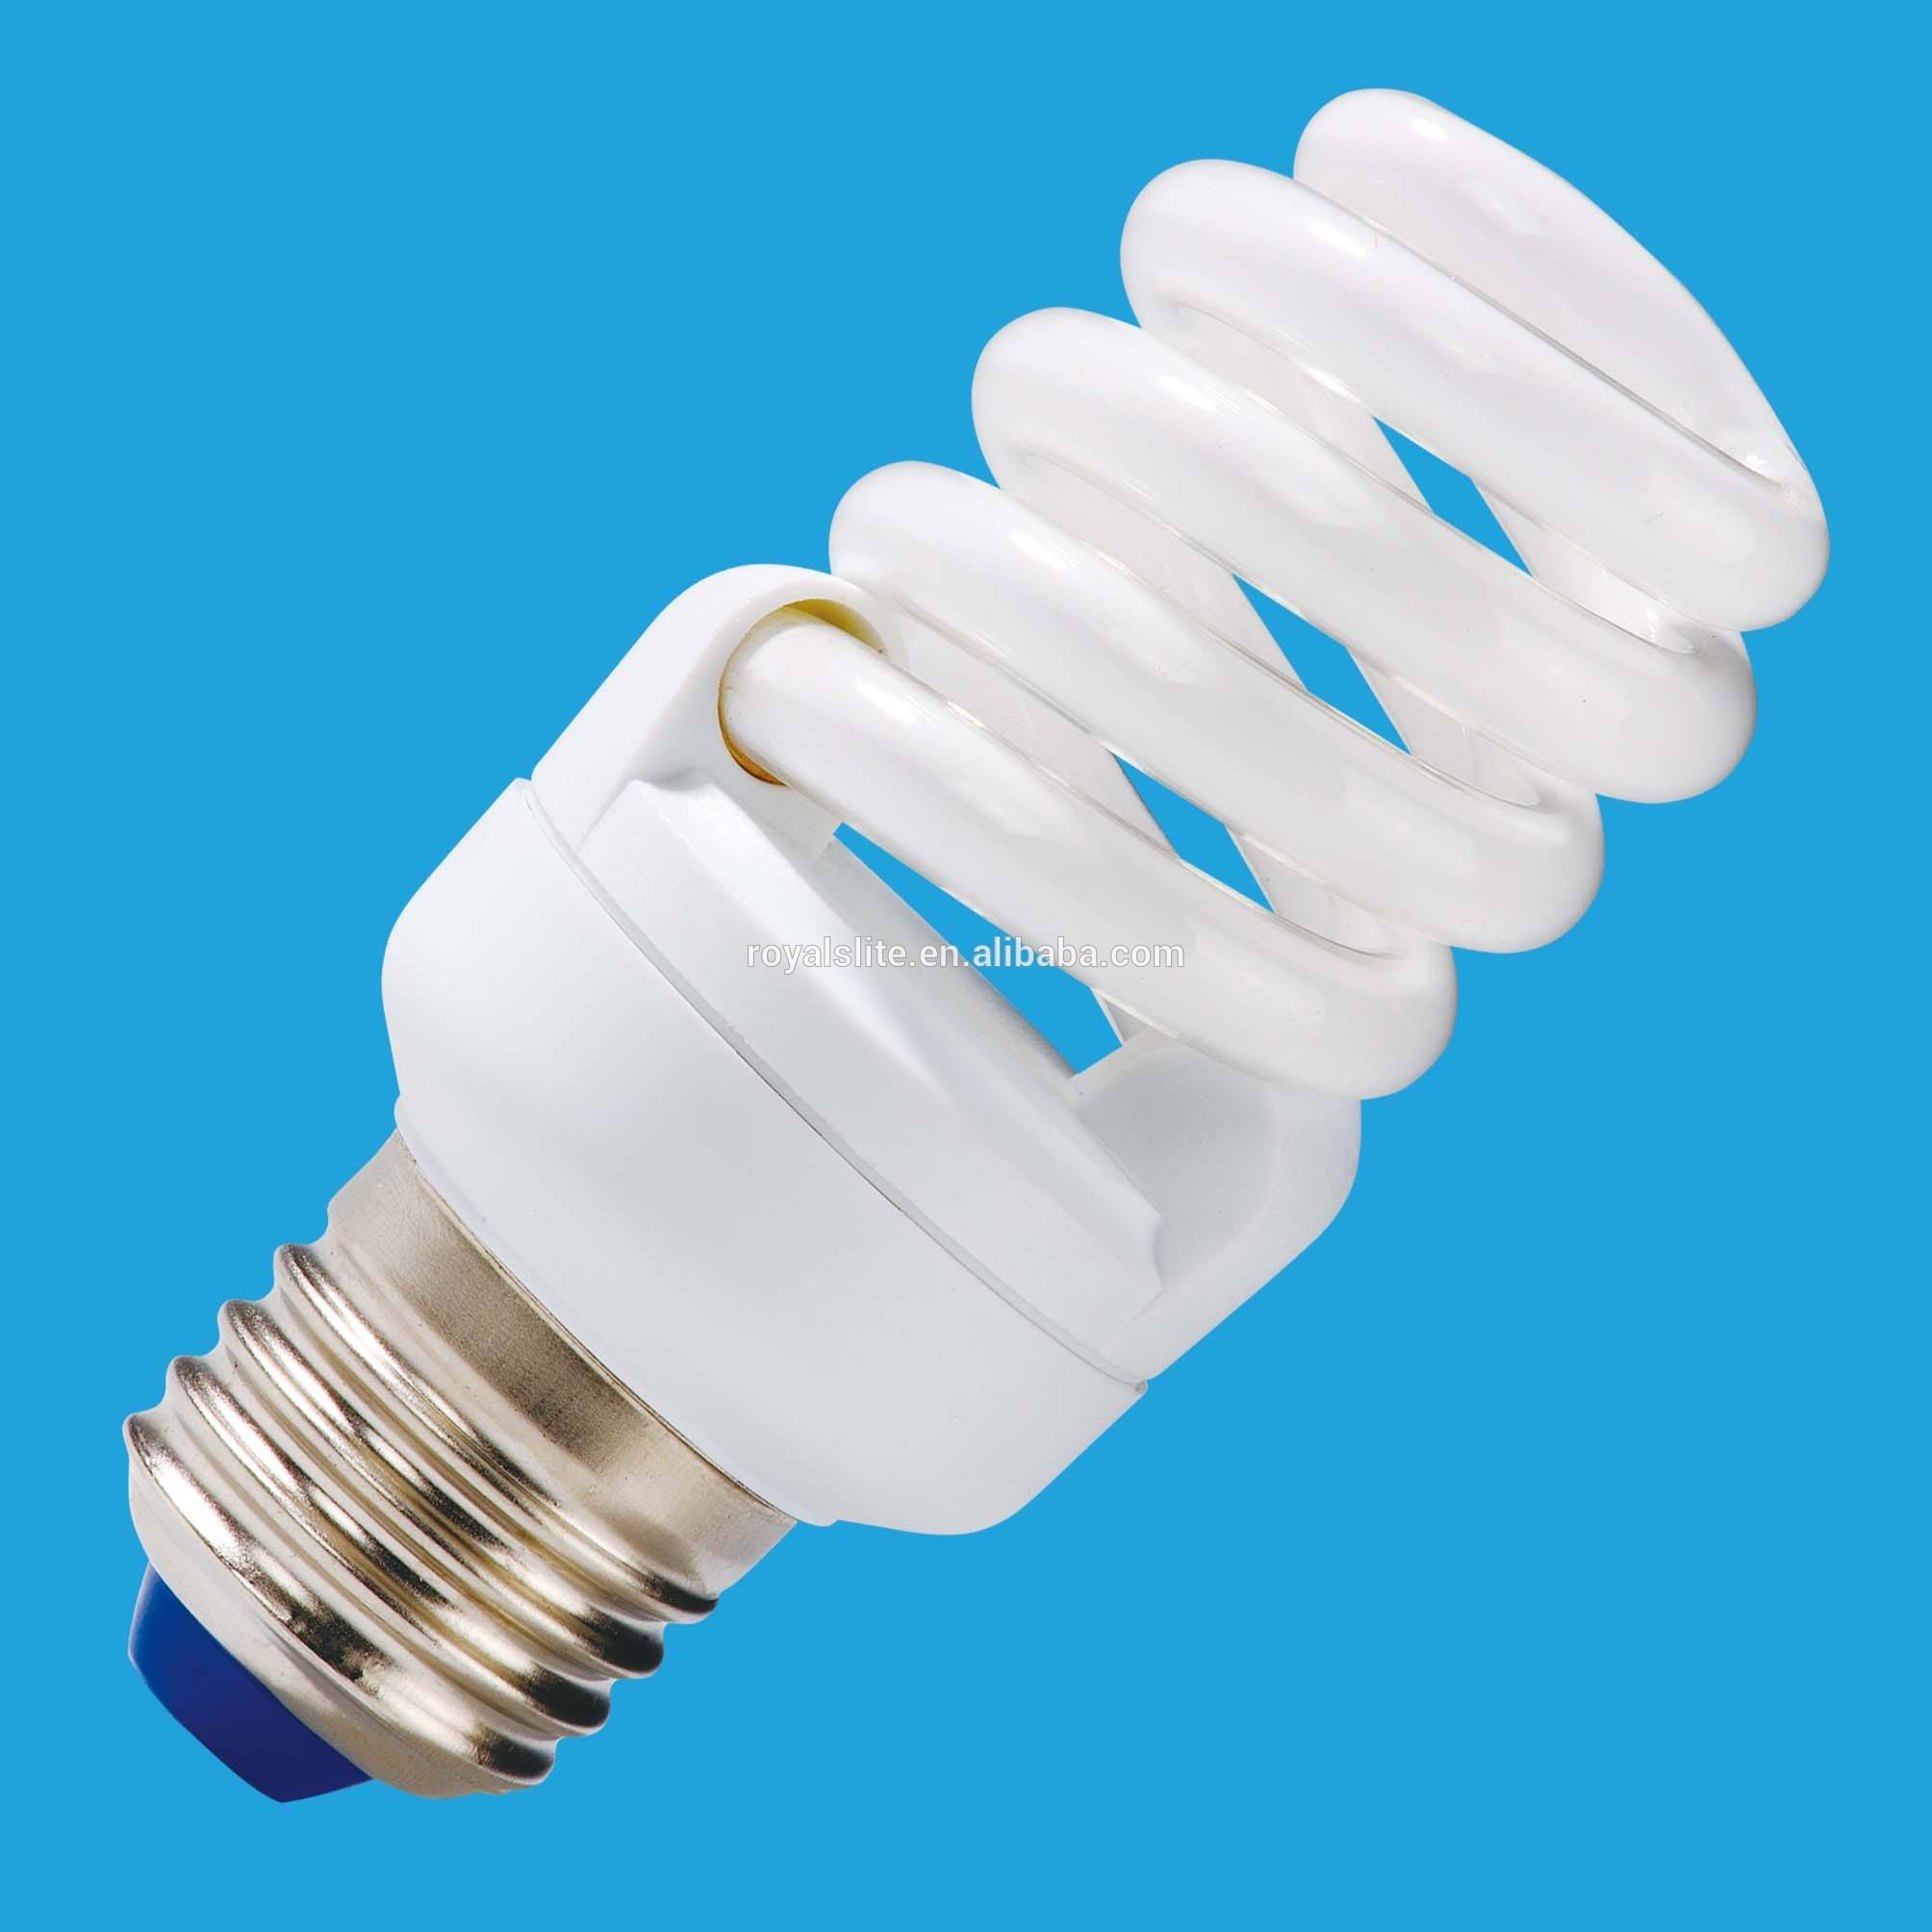 UL Energy star certified commercial lighting power saving LED par38 15w led bulb